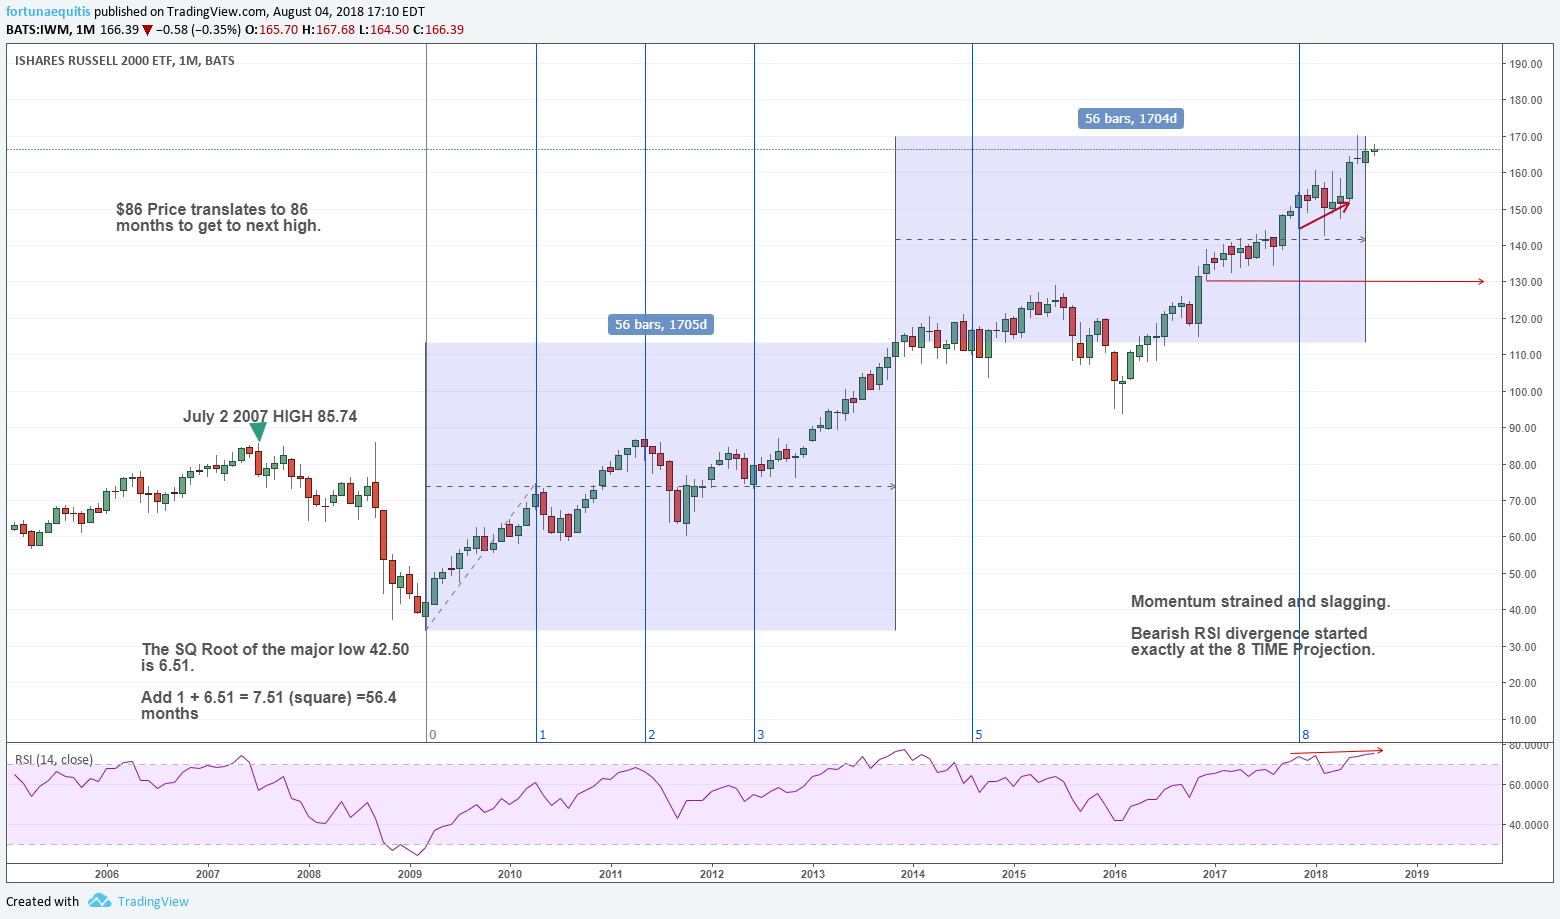 IWM russell 2000 time cycles periods chart 08042018